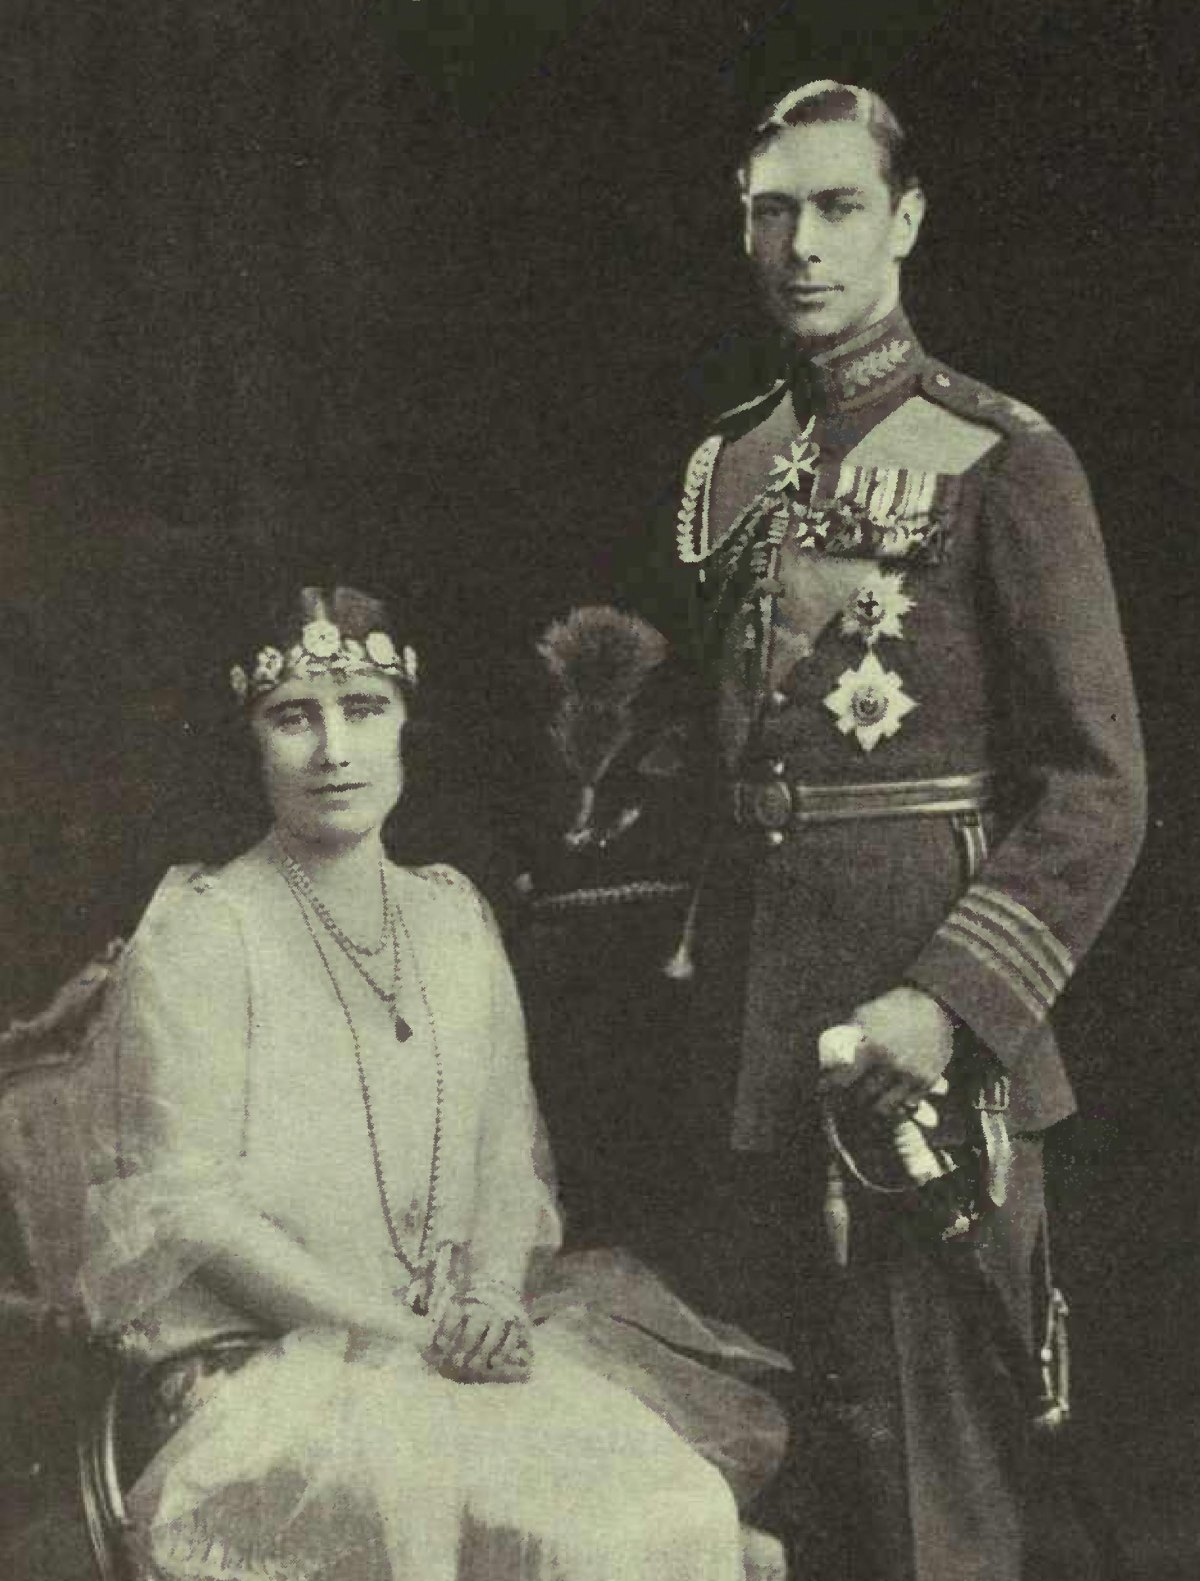 Portrait photograph of Prince Albert, Duke of York (later to be King George VI) in the full dress uniform of an RAF group captain and his bride, Elizabeth Bowes-Lyon, in 1927